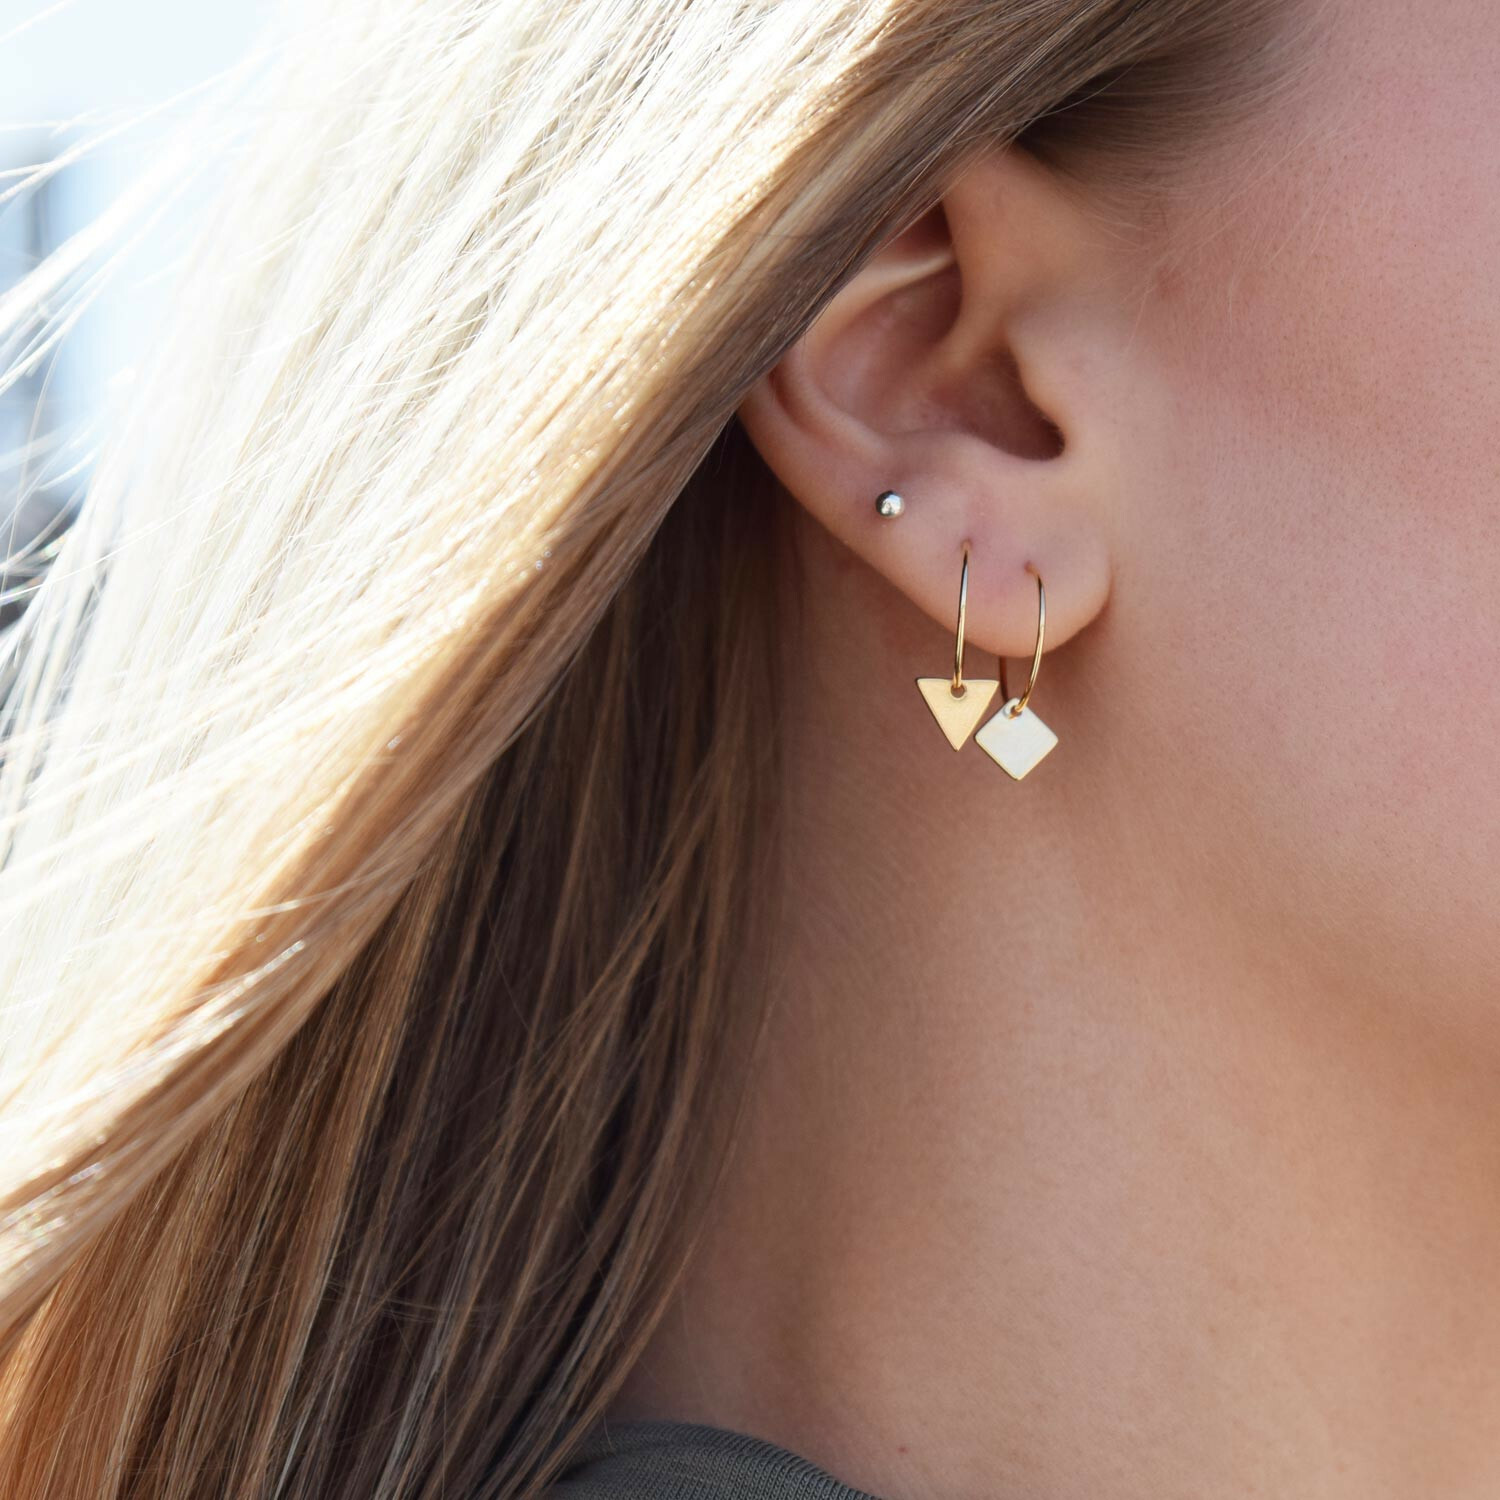 SMALL GOLD TRIANGLE HOOP EARRINGS